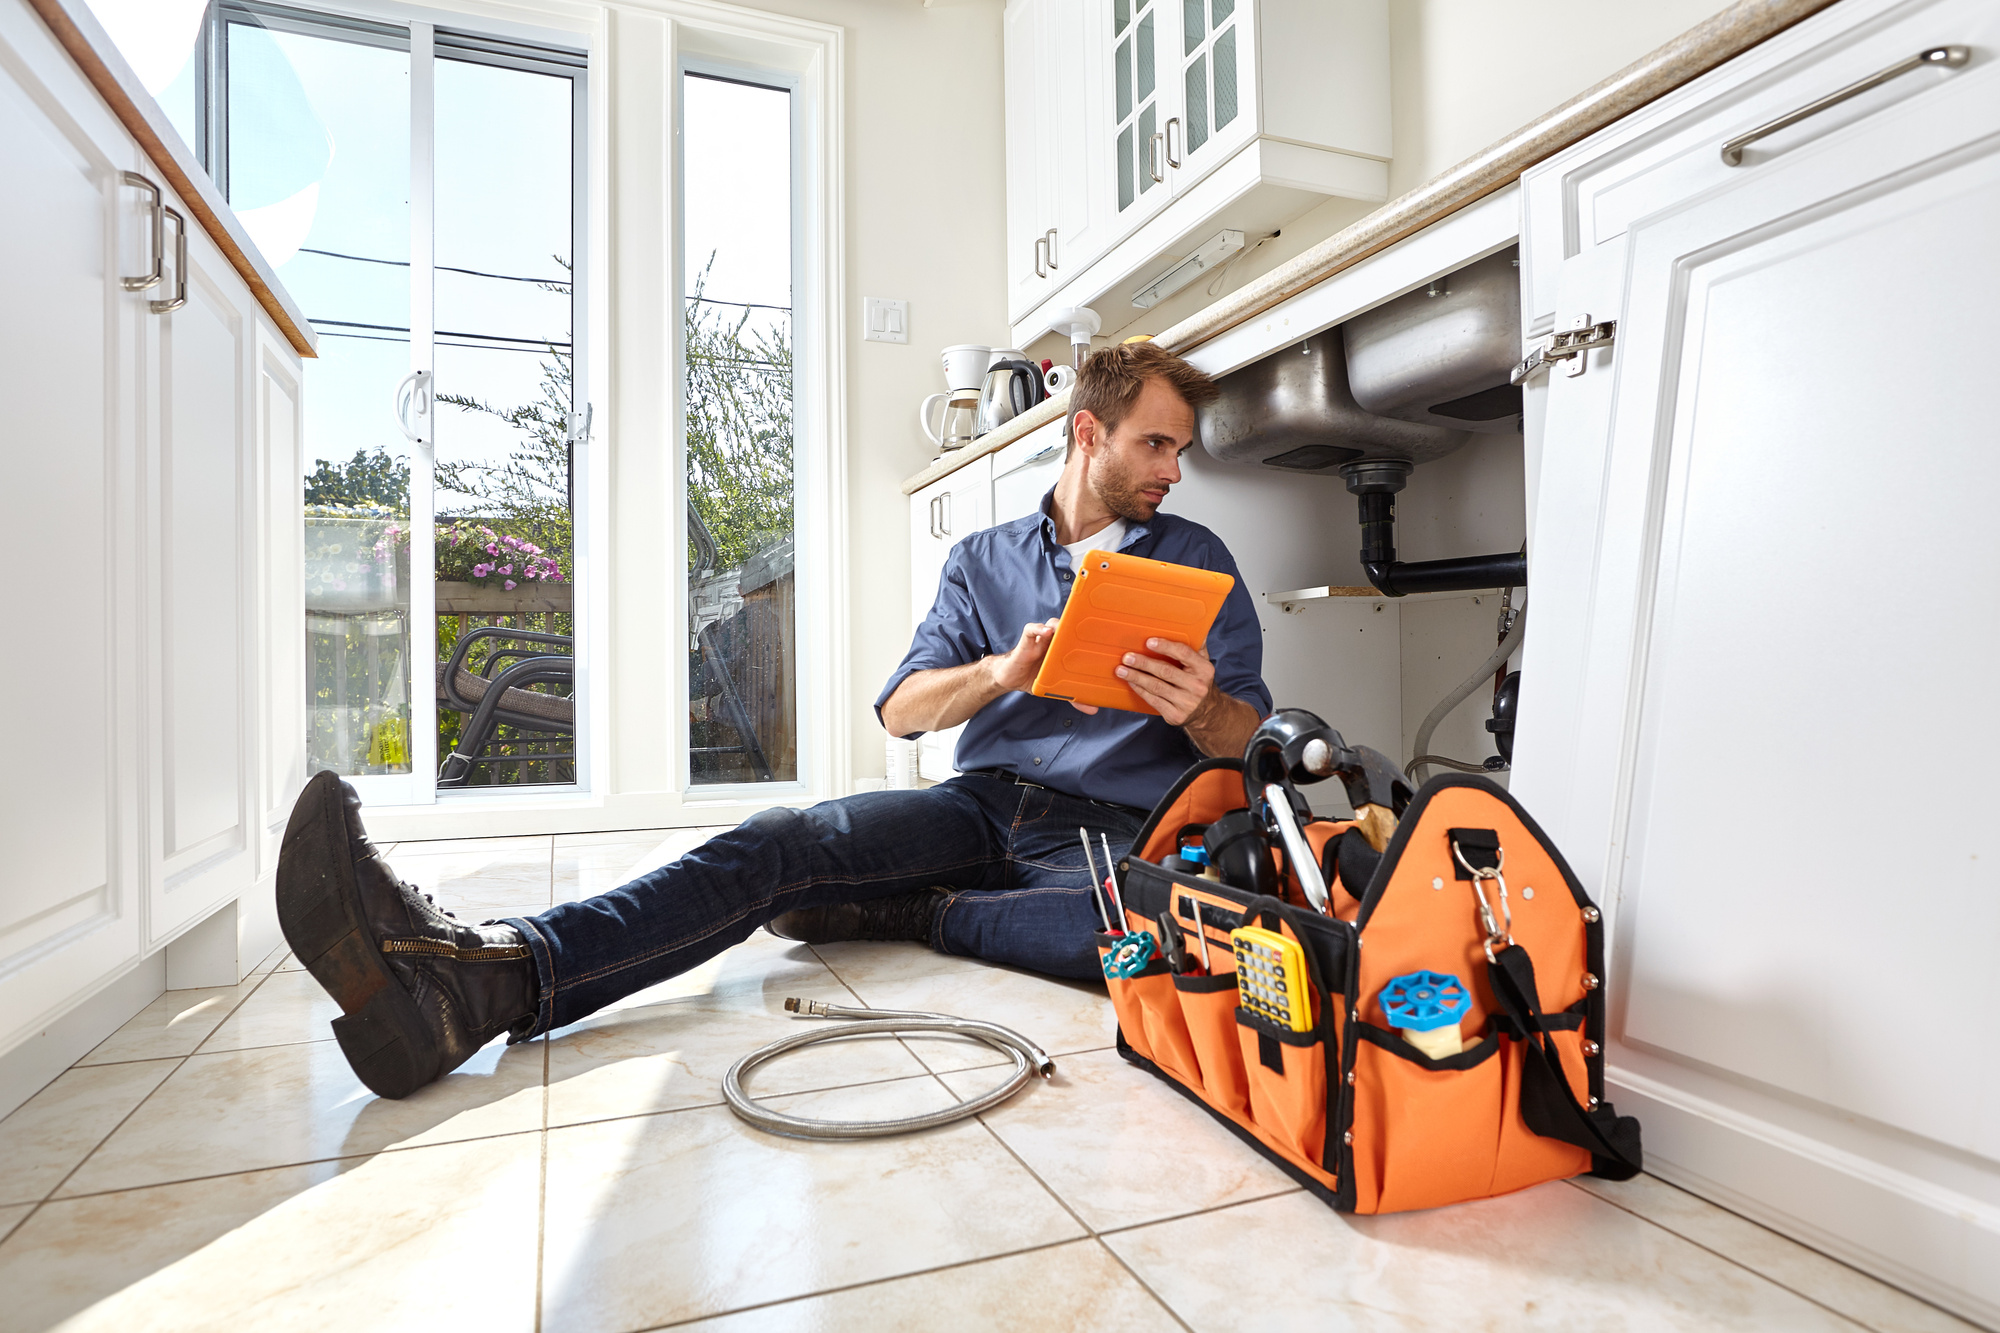 7 Key Questions to Ask Before Hiring a Plumber